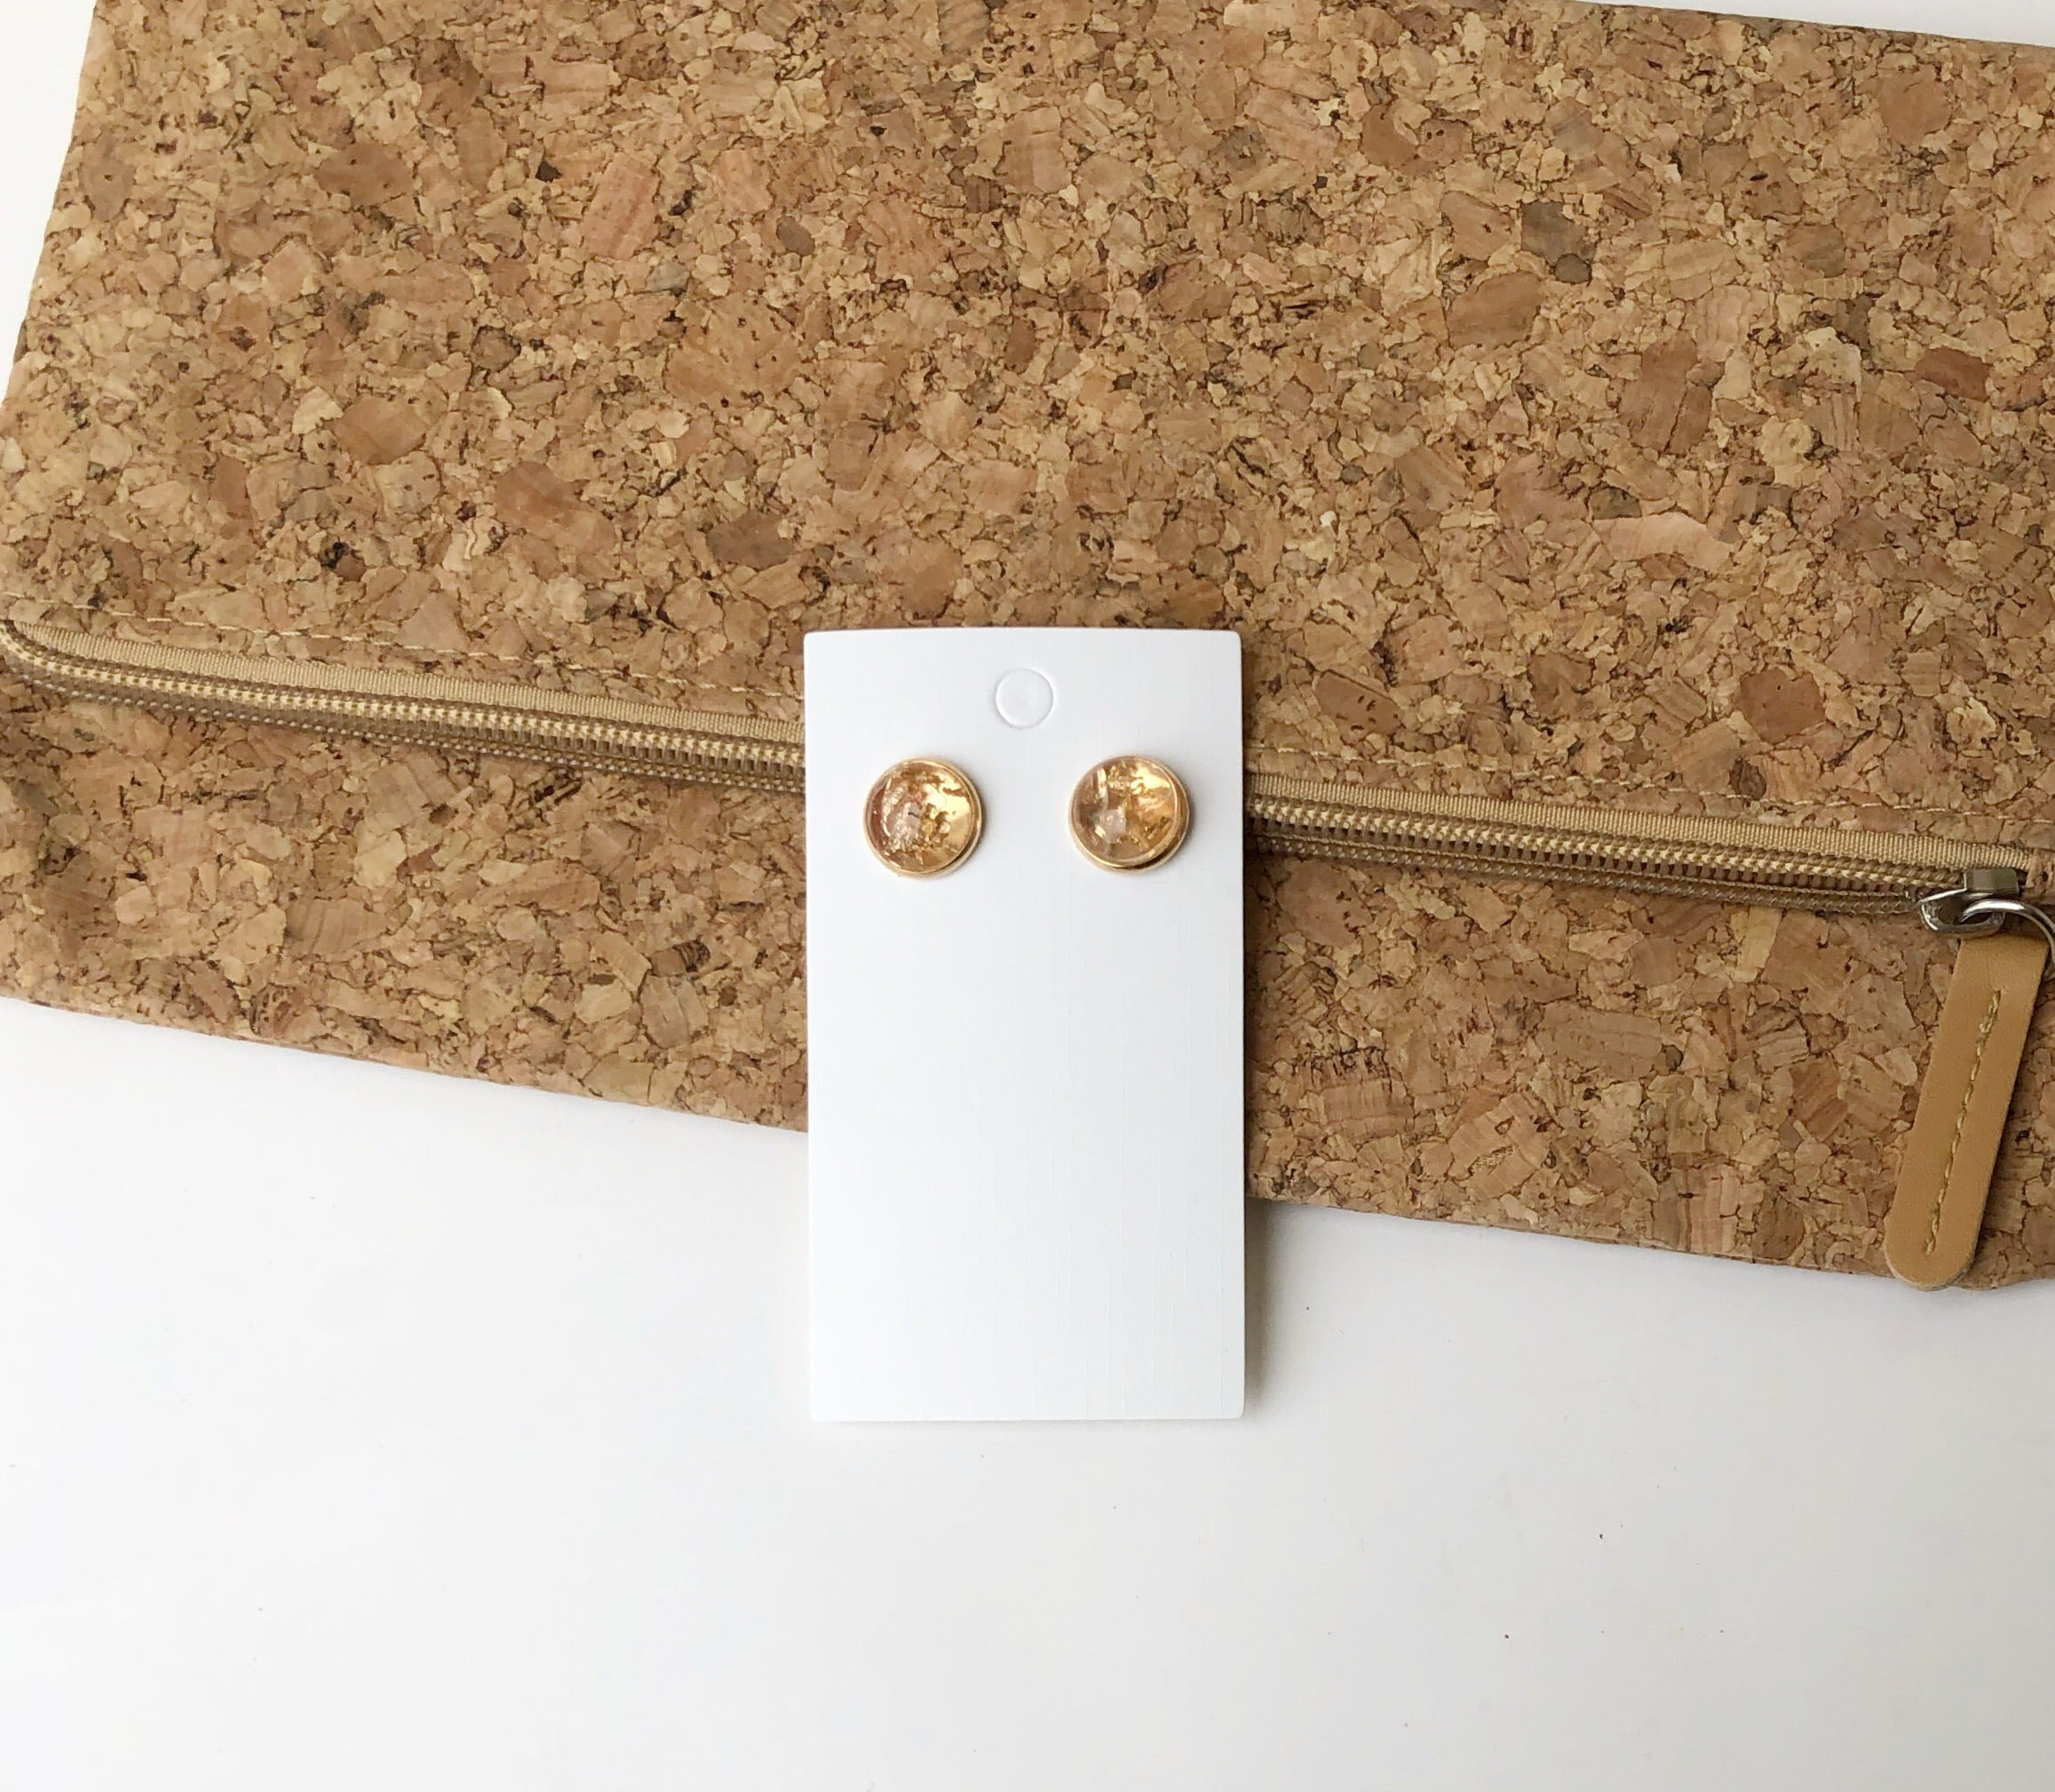 Gold Flaked Stud Earrings